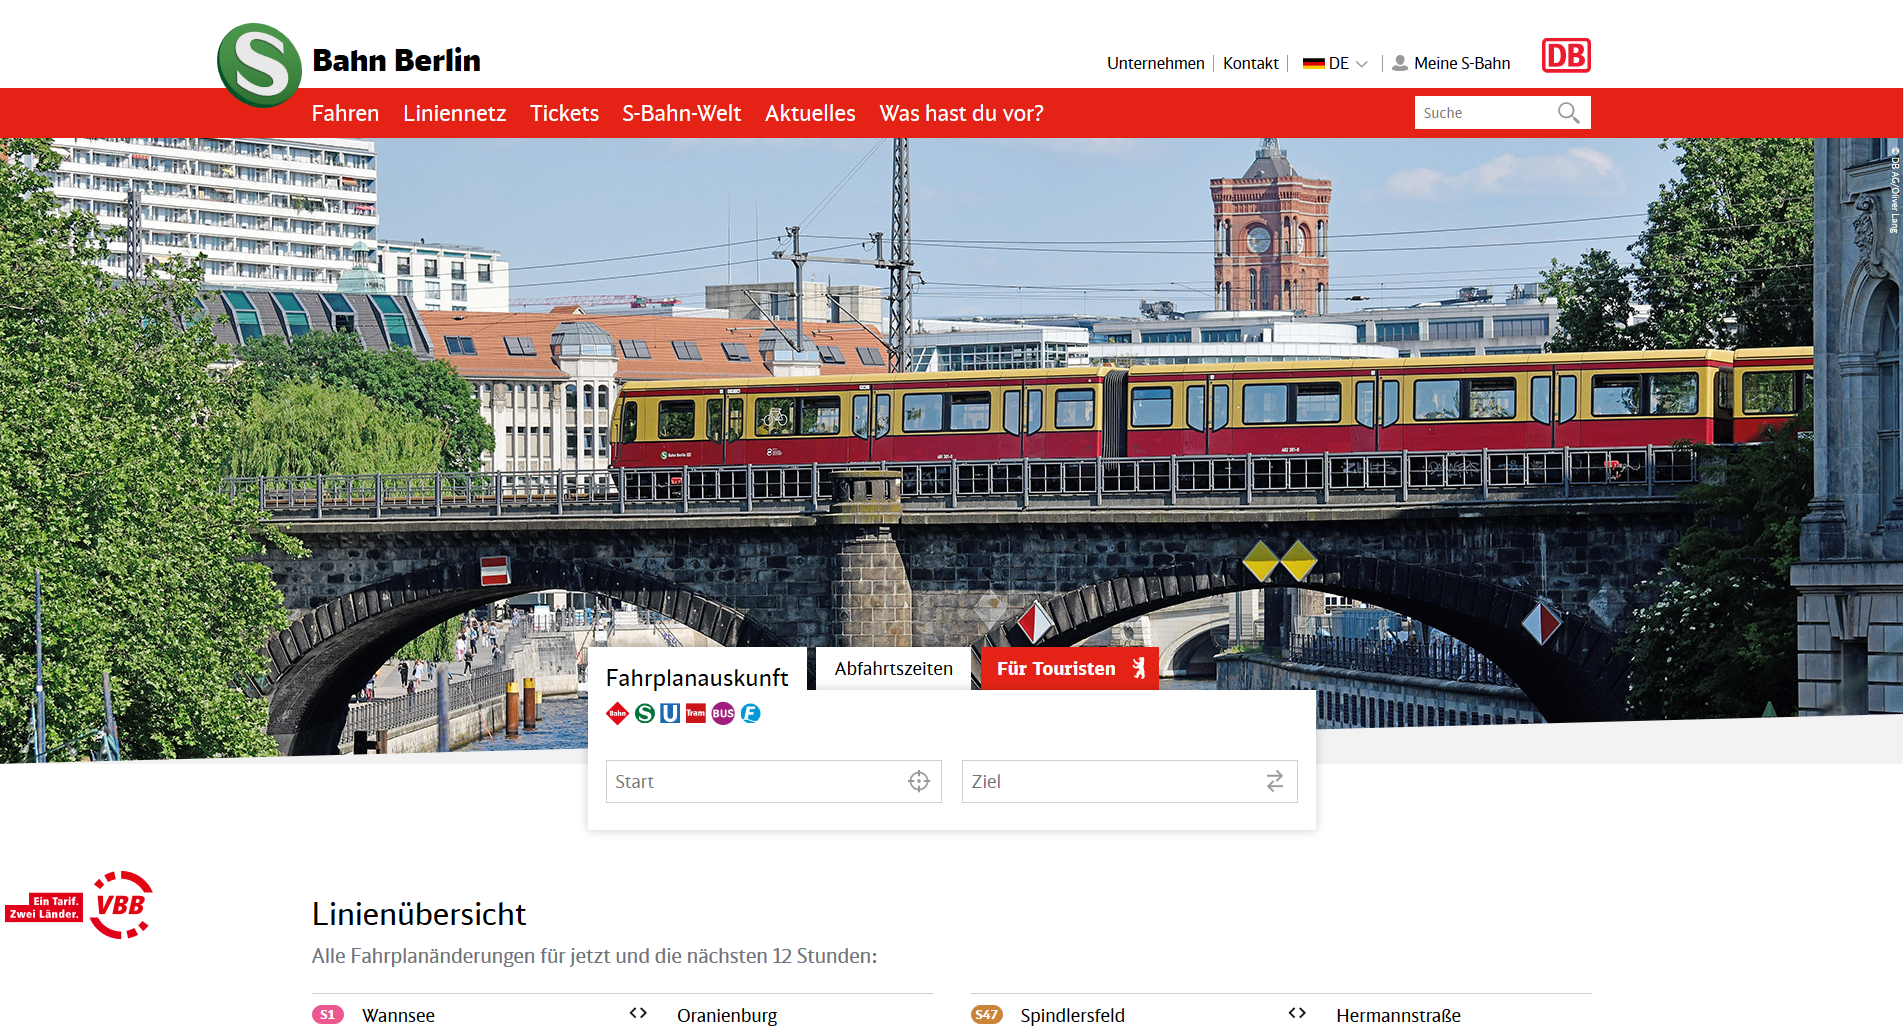 Start Page Of S Bahn Berlin With Journey Planner